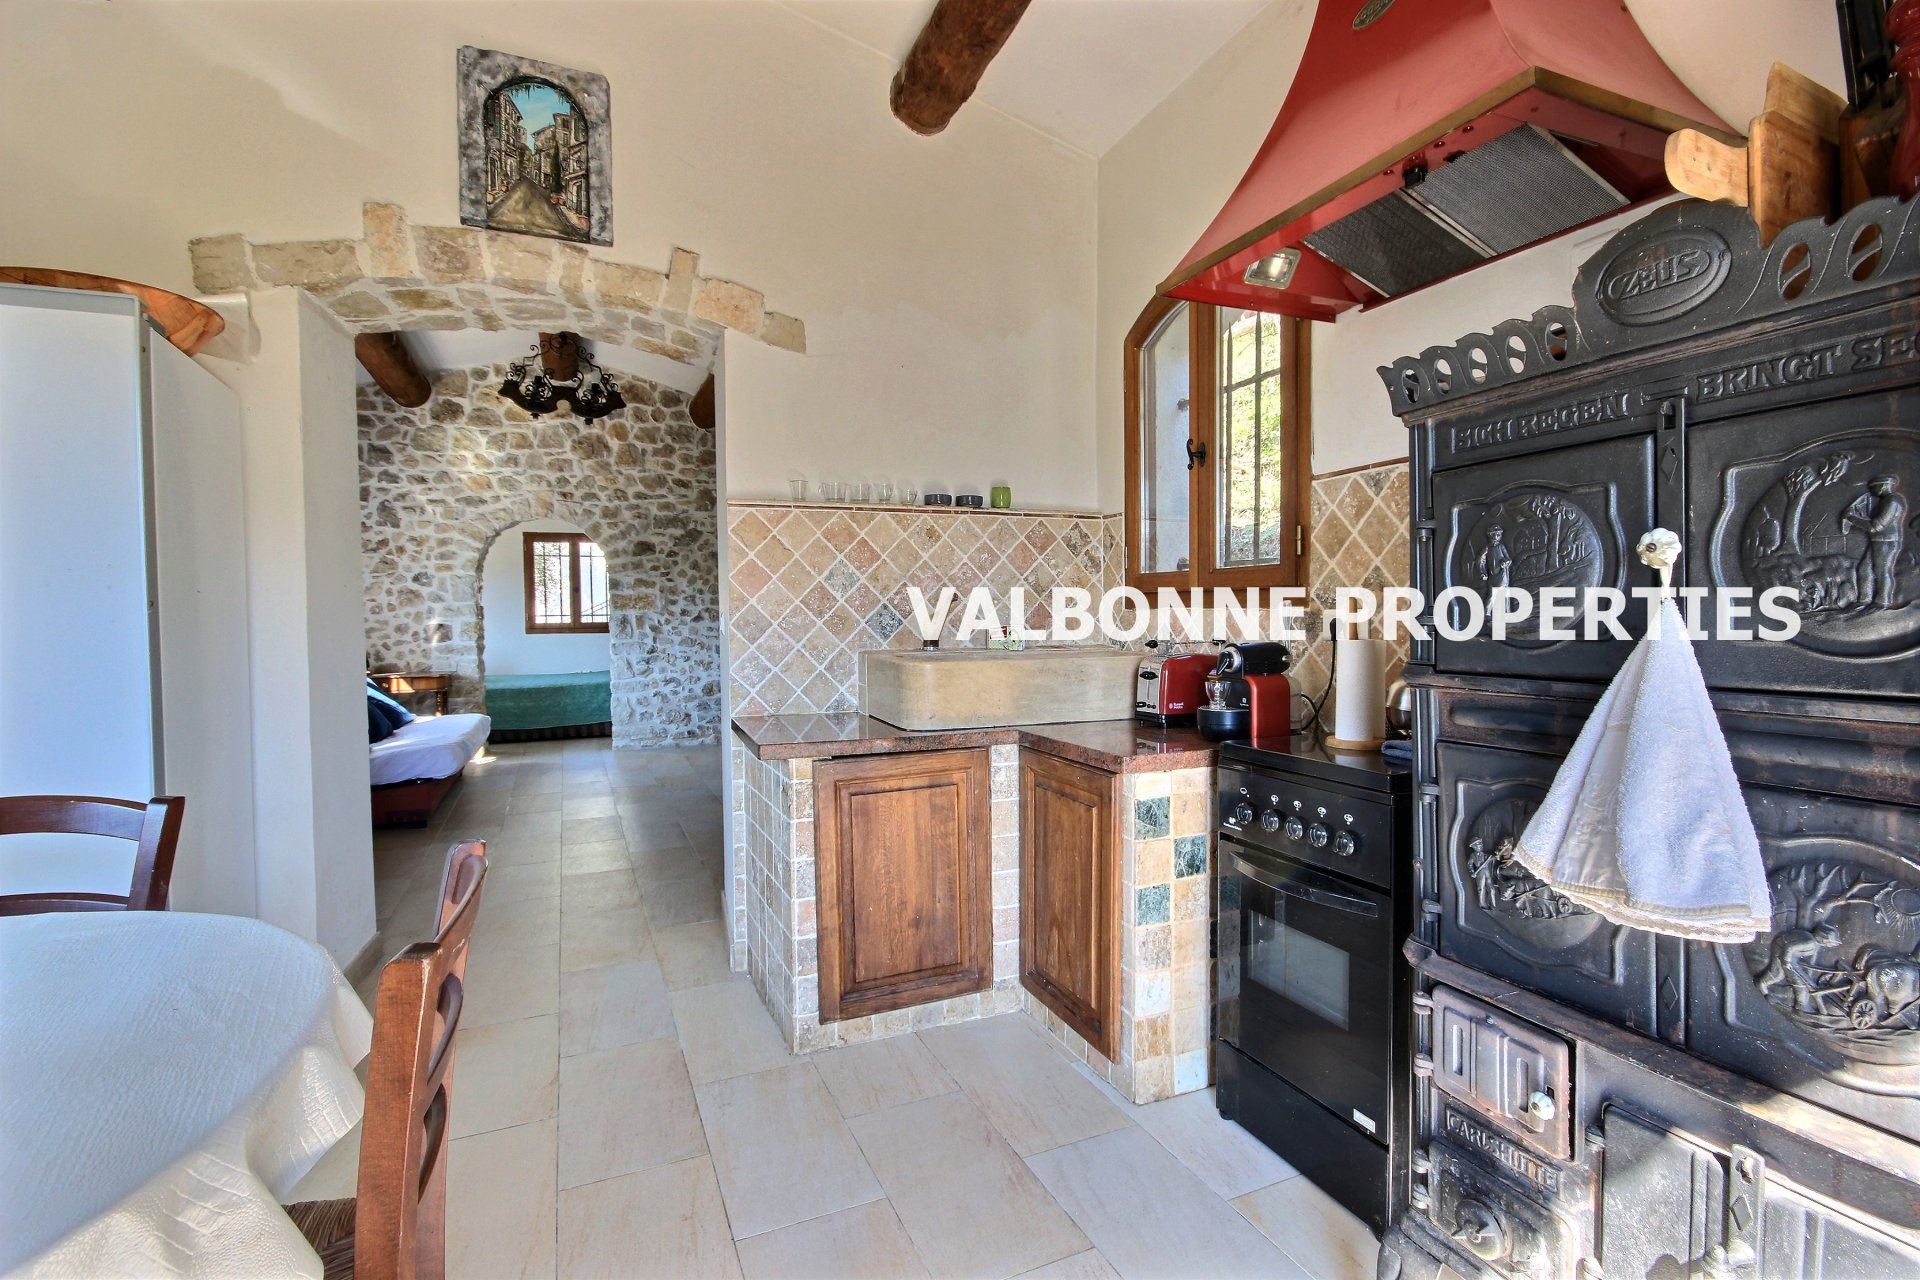 Property lots of charm consisting of 2 houses, panoramic views.